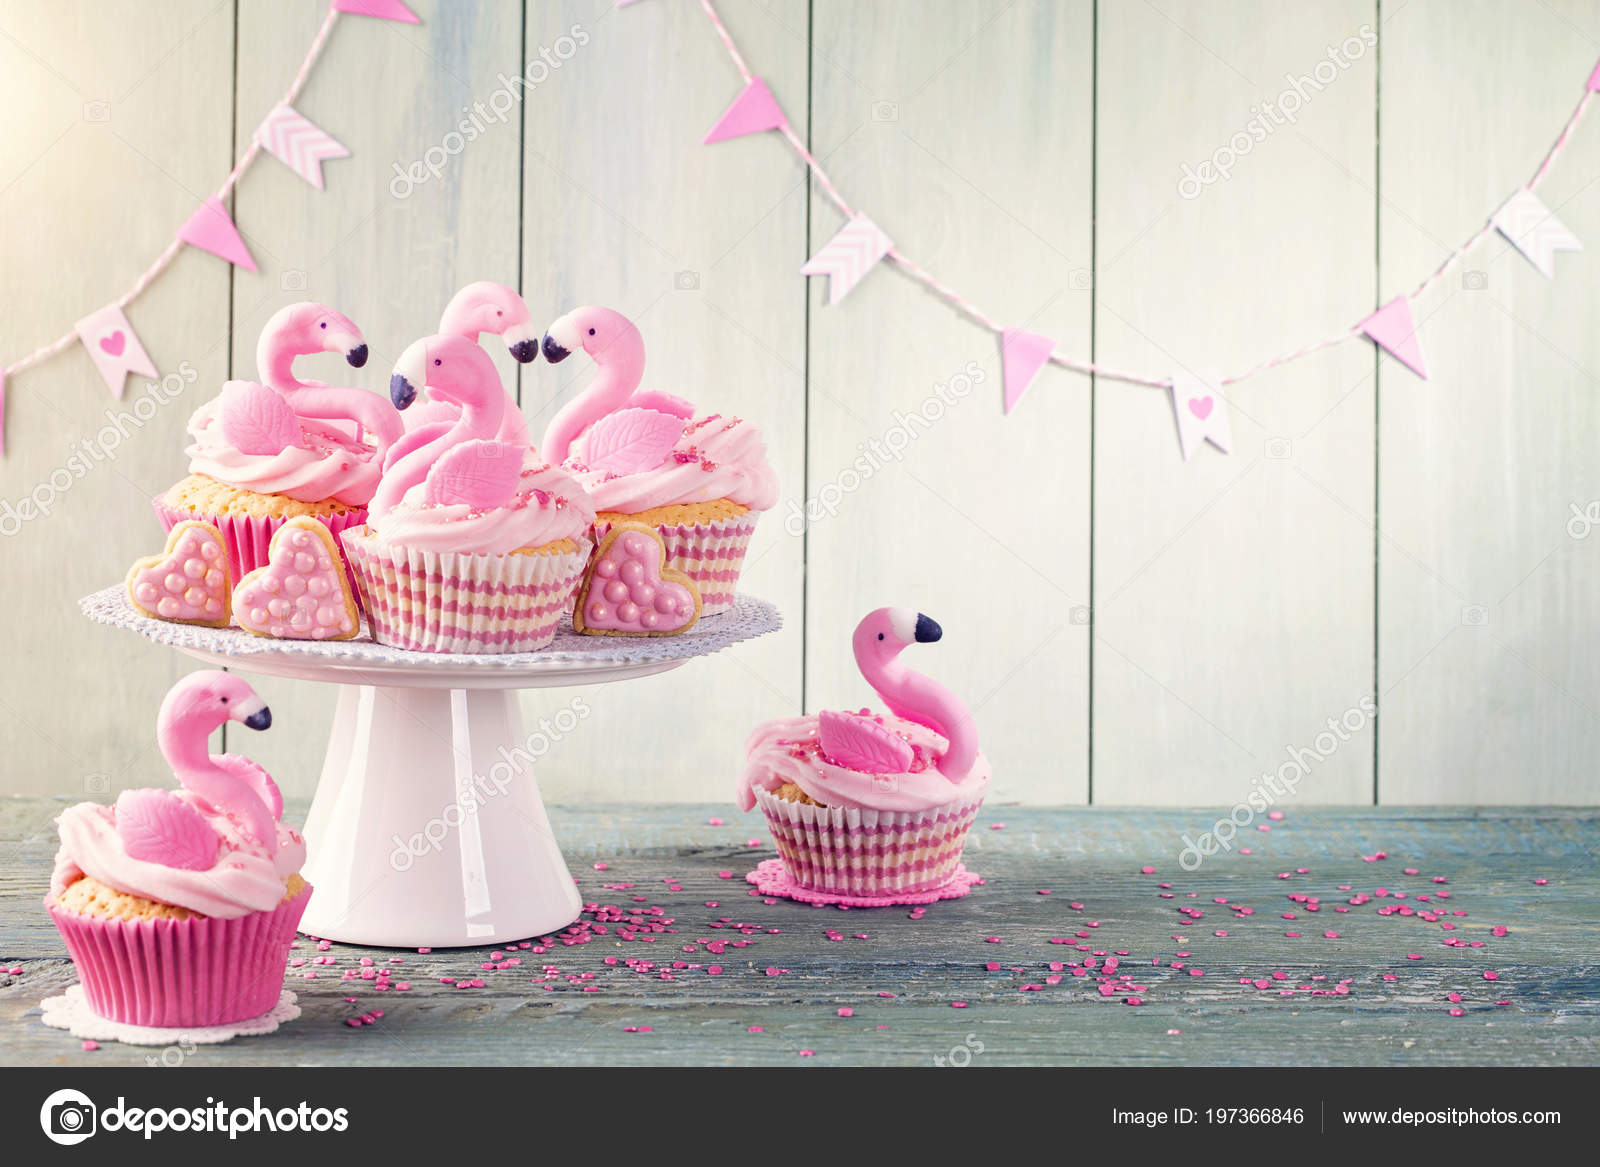 Groovy Images Flamingo Birthday Cake Flamingo Cup Cakes Party Stock Personalised Birthday Cards Veneteletsinfo